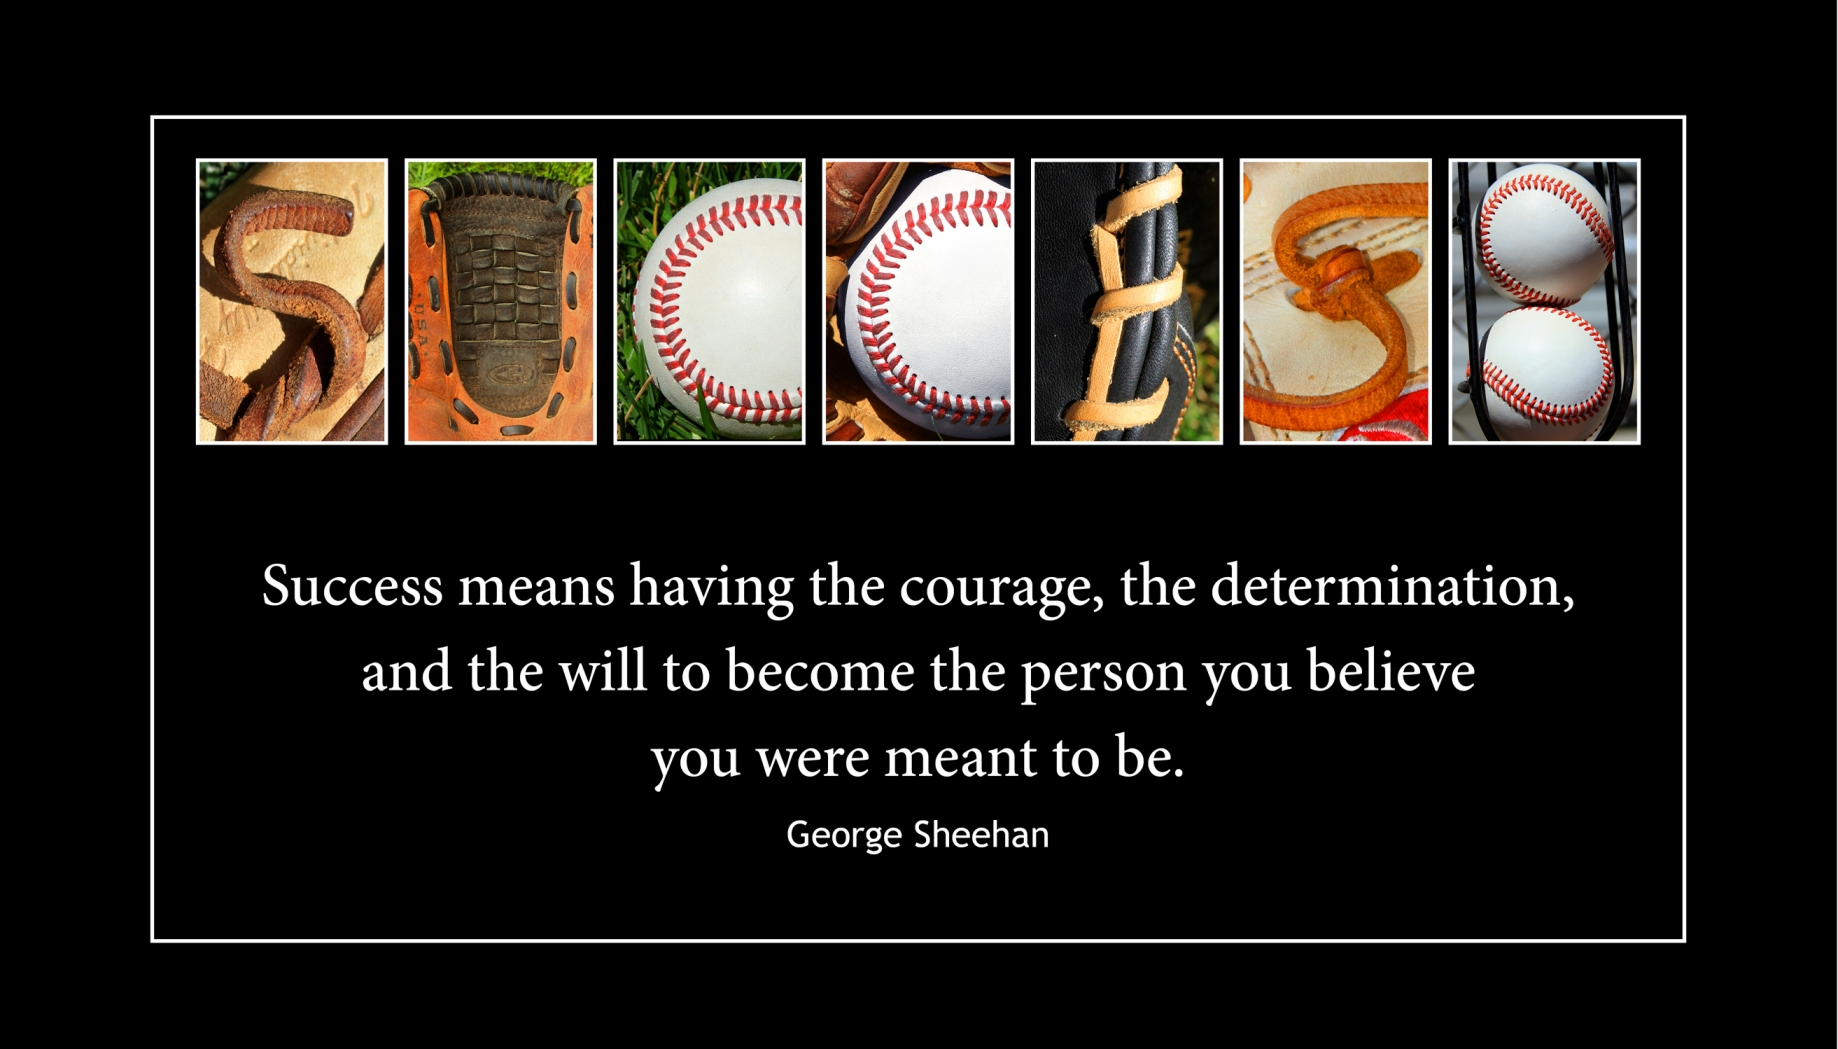 SUCCESS Wood Plaque<br>Baseball Letter Art<br>George Sheehan Quote